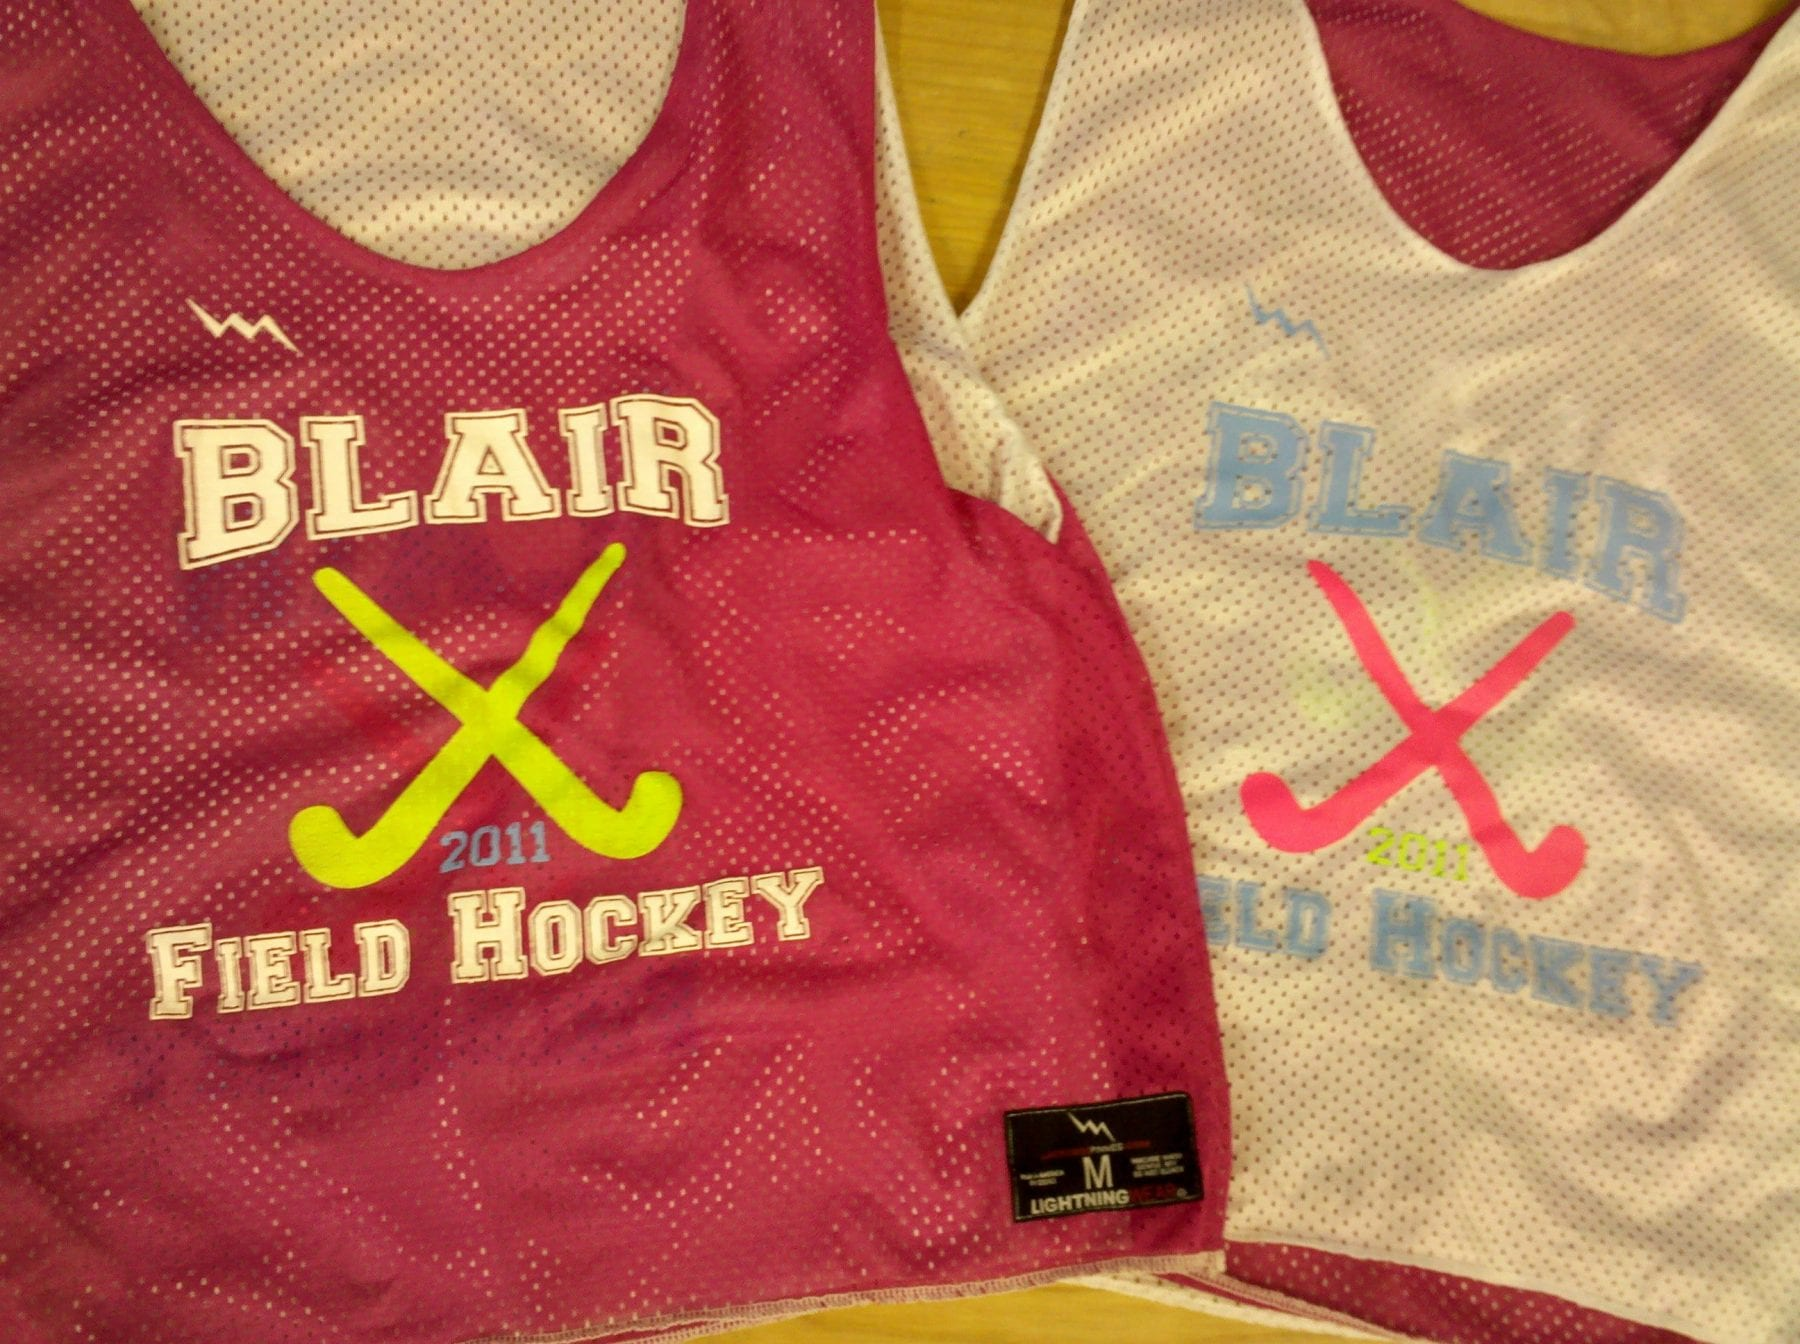 blair field hockey pinnies